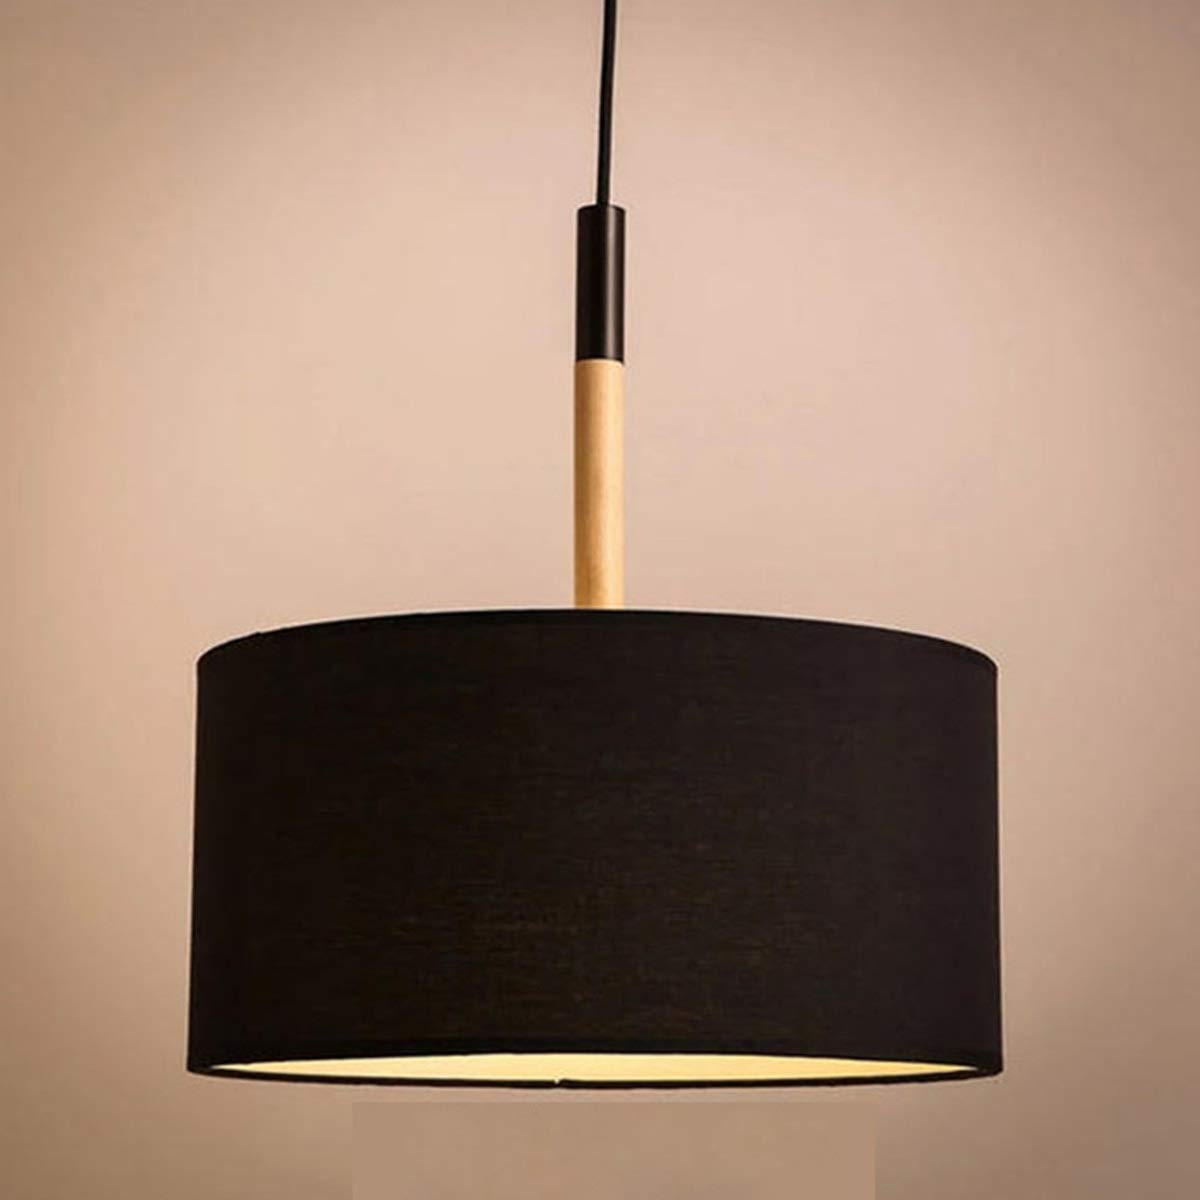 NANGE Modern Pendant Light,Nordic Simple Single Head Chandelier,Living Room Dining Room Study Bedroom,E27(Without Light Source) (Color : Black, Size : AC 220V-Warm White)